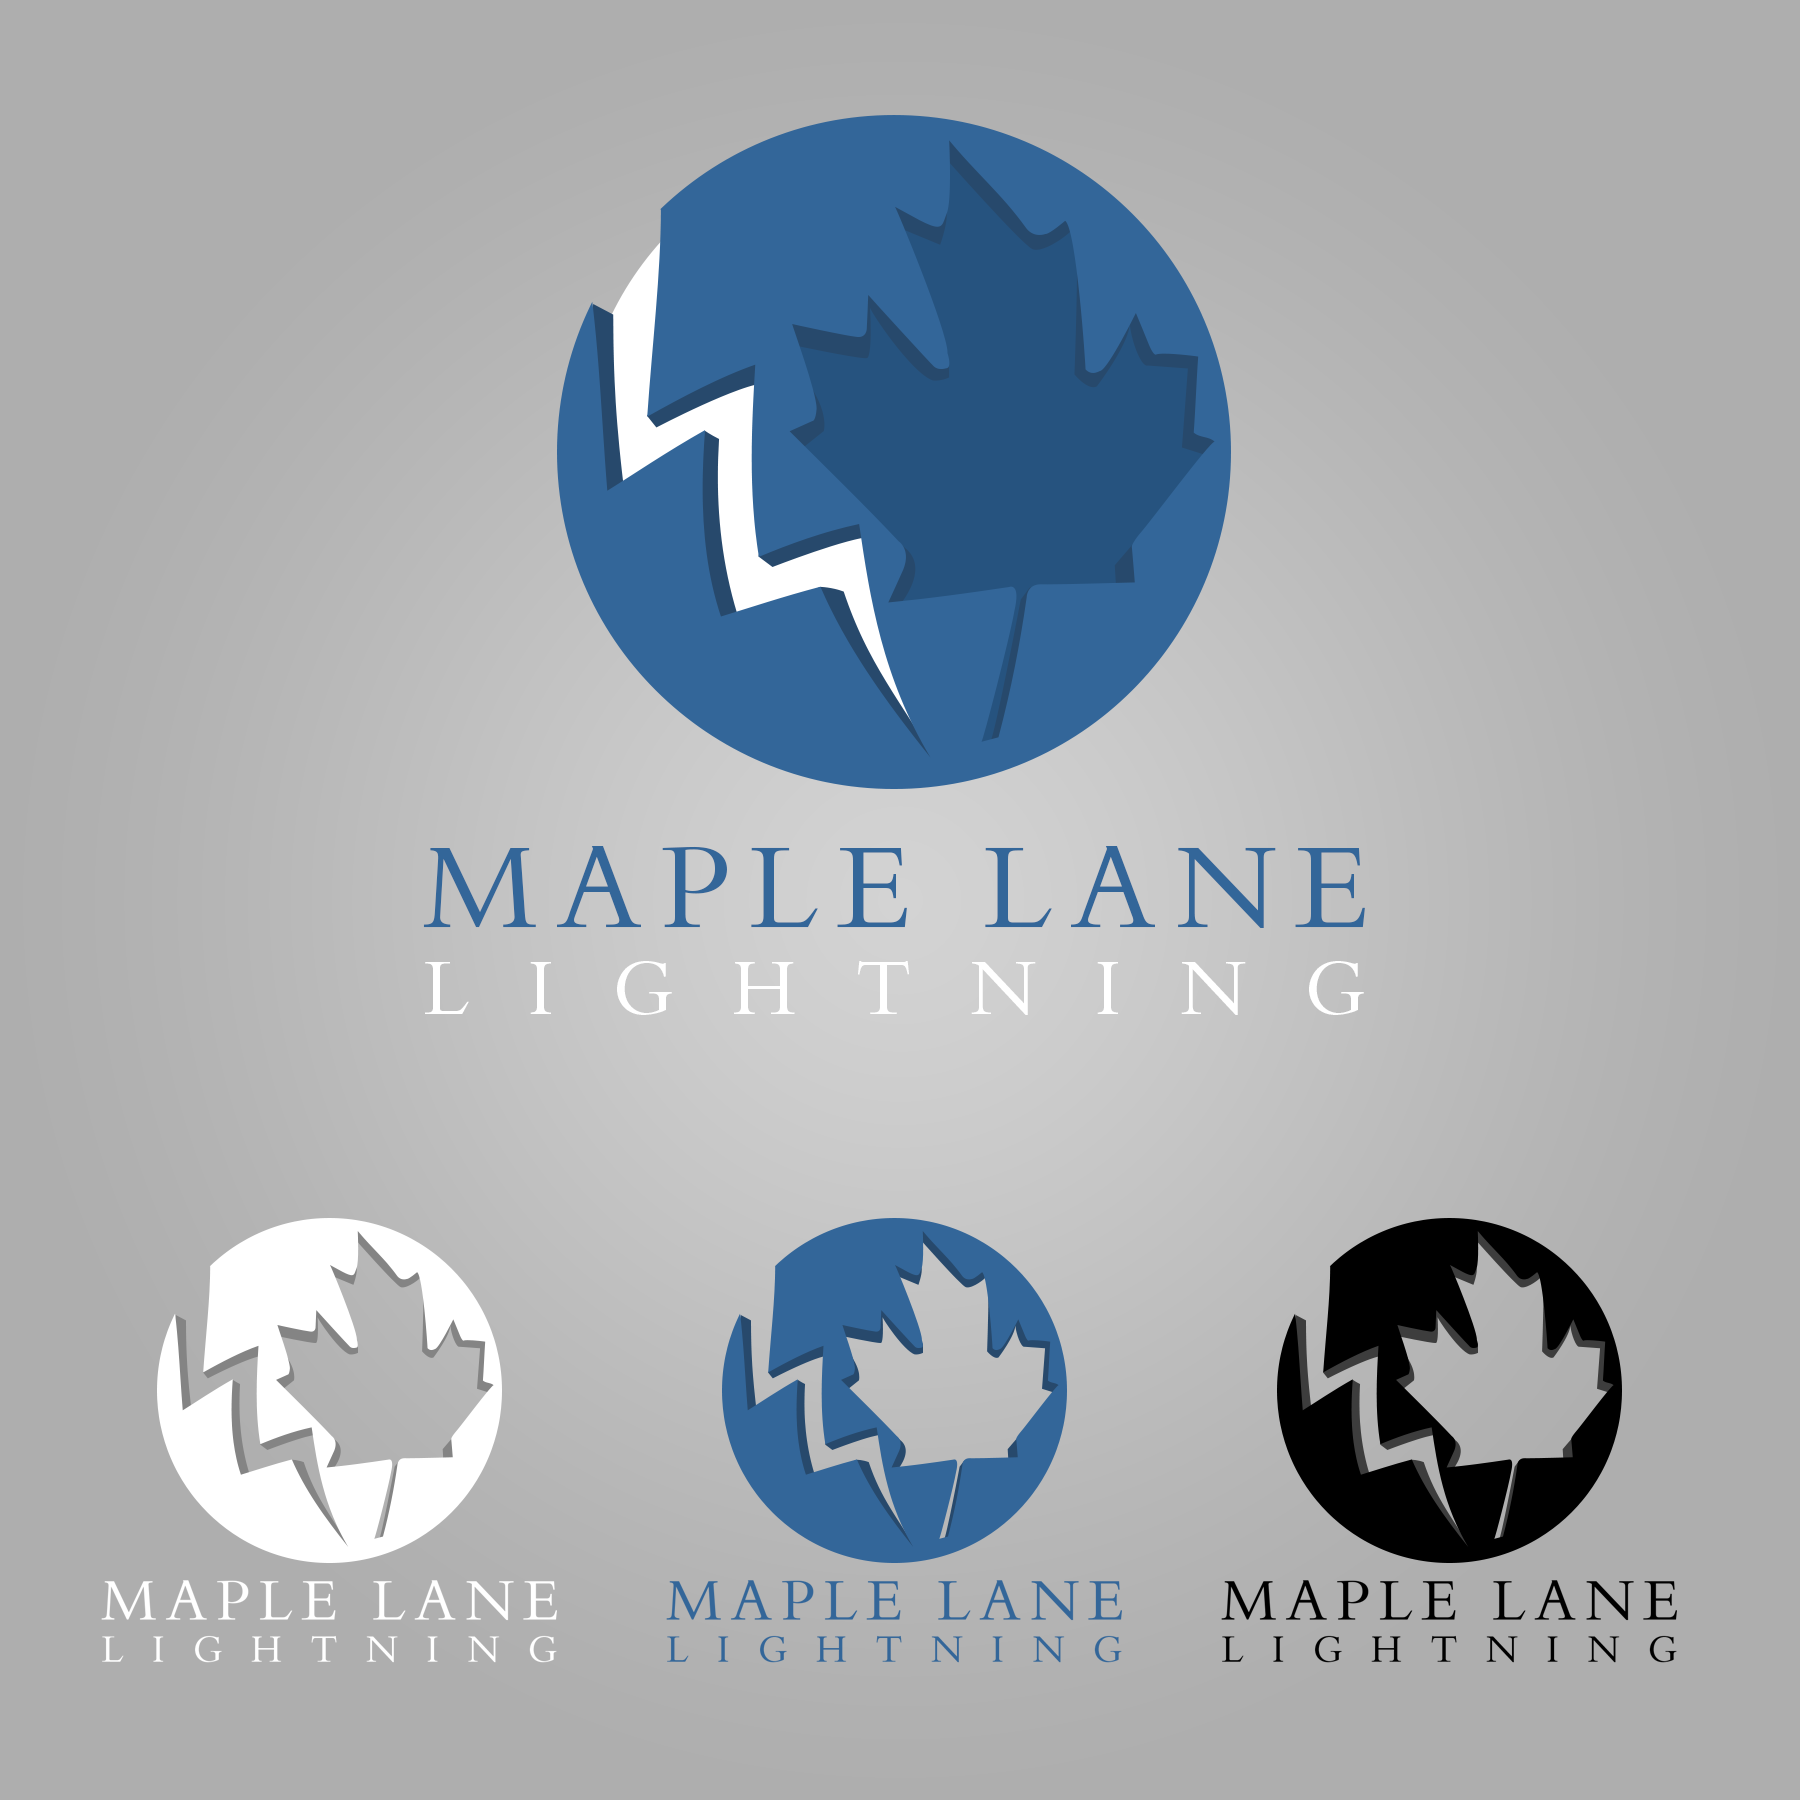 Logo Design by Lemuel Arvin Tanzo - Entry No. 62 in the Logo Design Contest Maple Lane Logo Design.